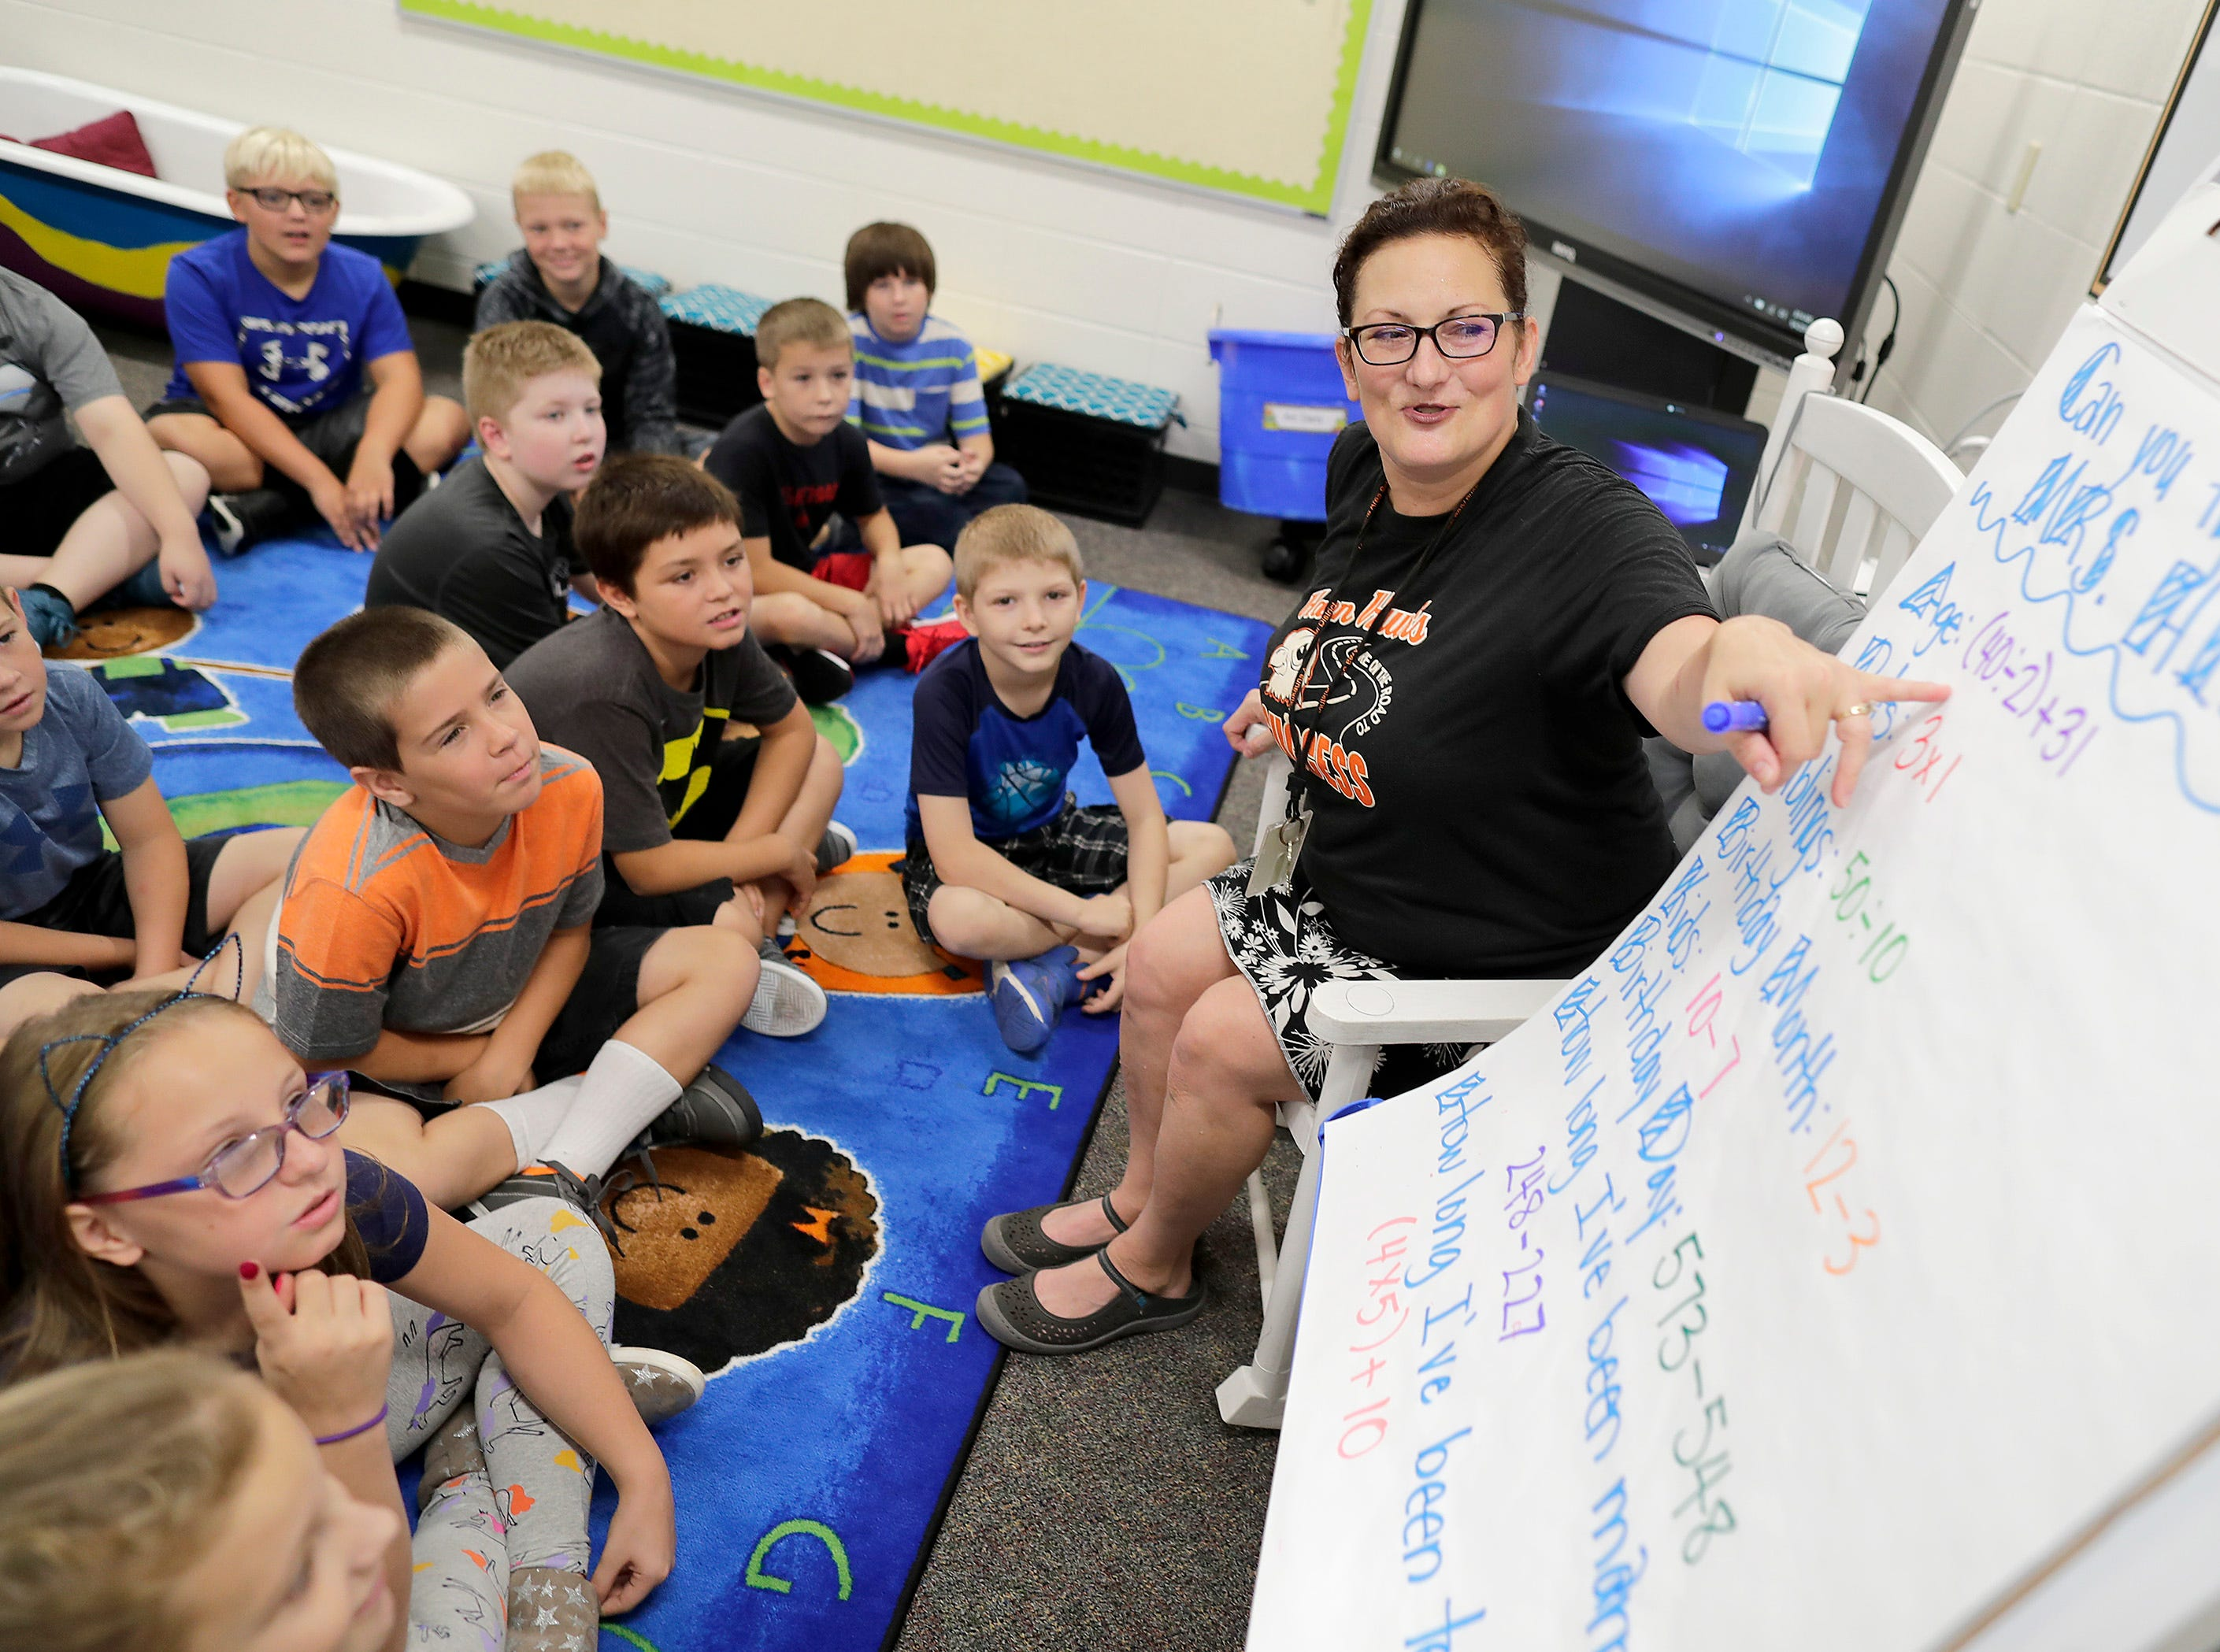 Fourth grade teacher Lisa Hietpas welcomes students to class on the first day of school at Victor Haen Elementary on Tuesday, September 4, 2018, in Kaukauna, Wis. 